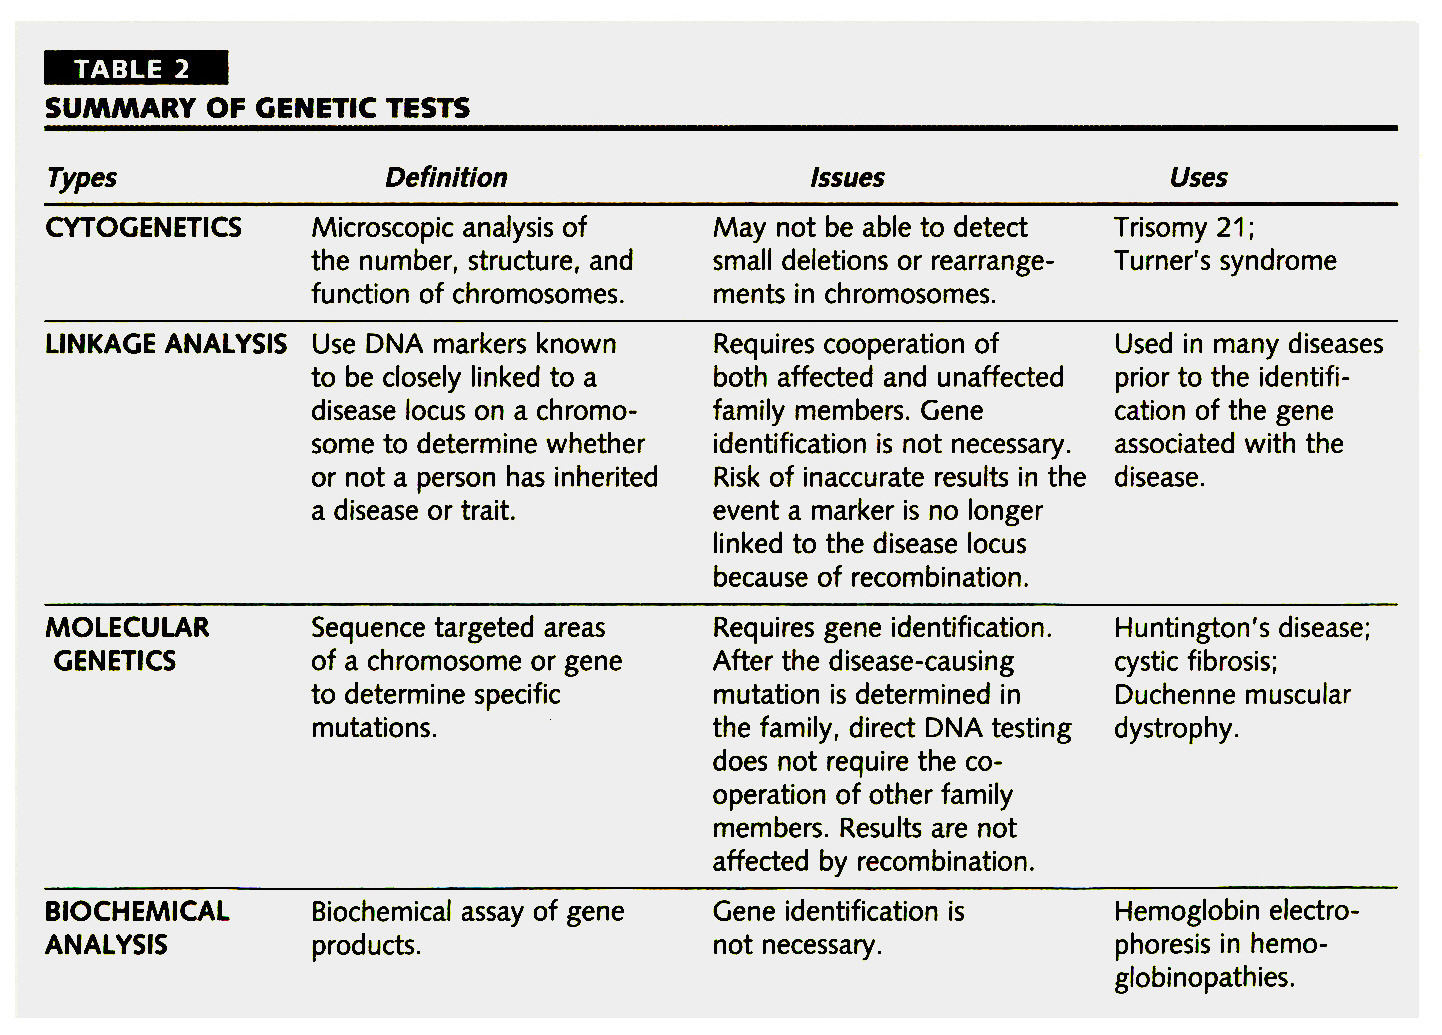 TABLE 2SUMMARY OF GENETIC TESTS